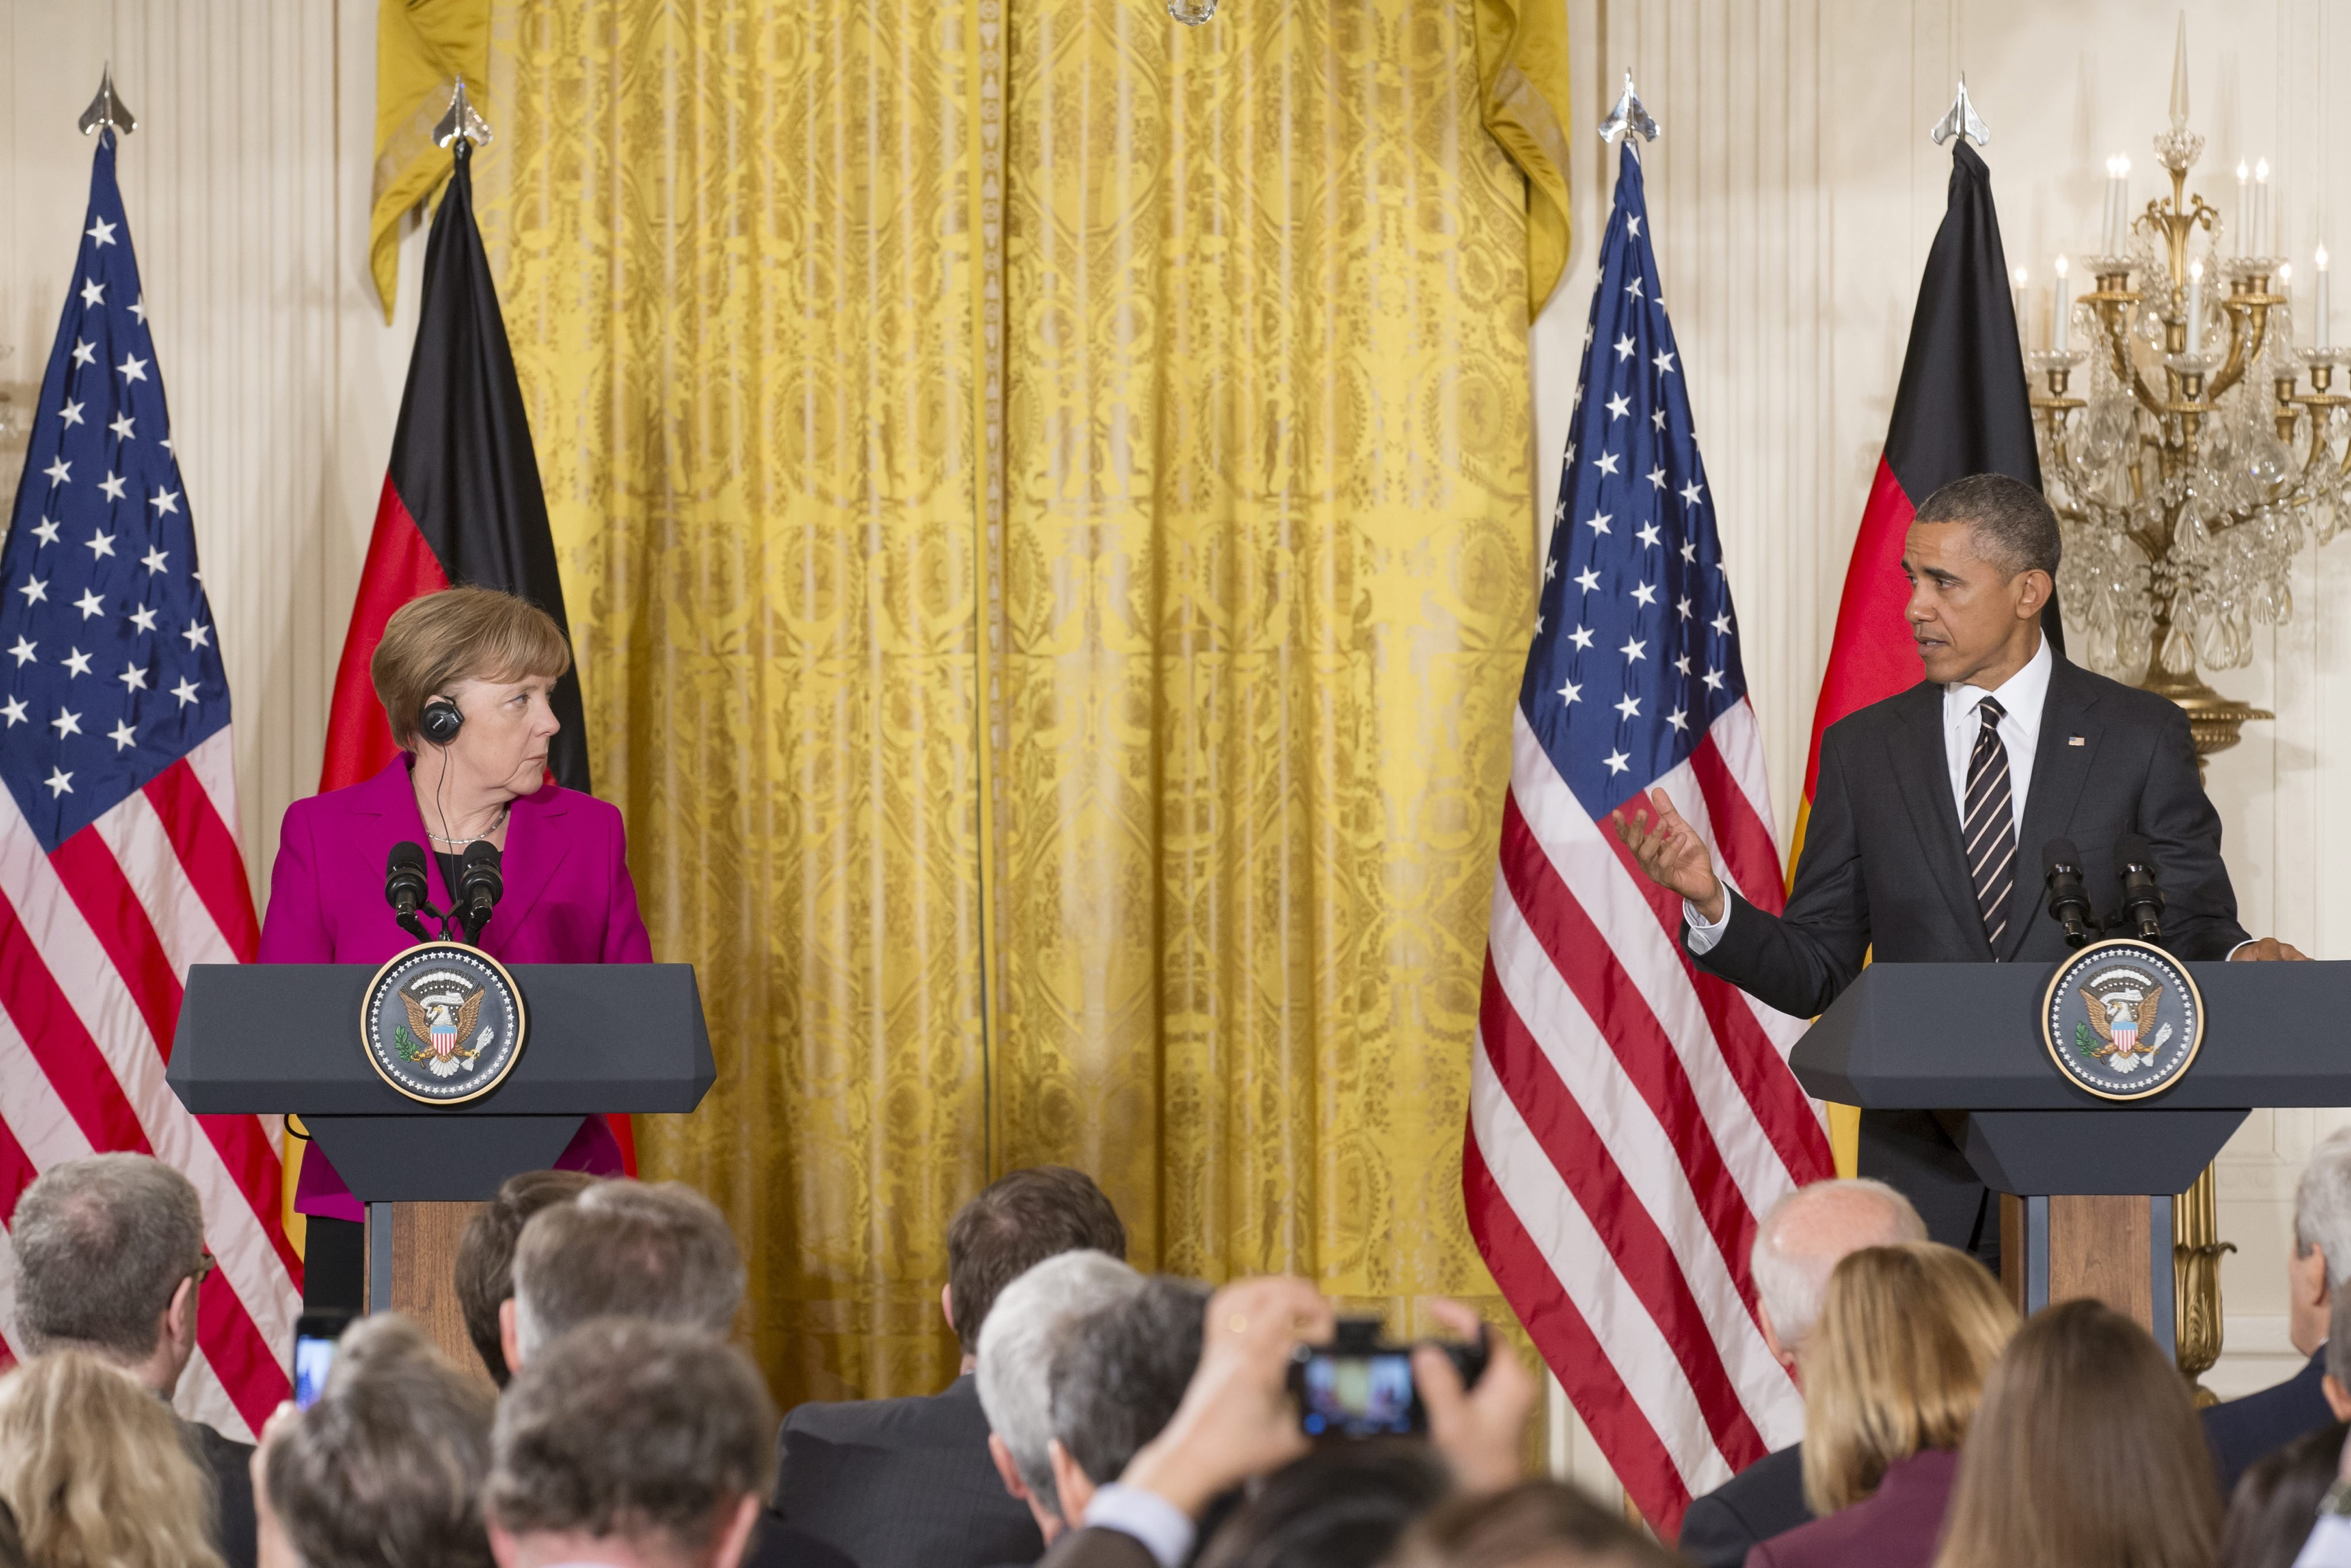 From Left: Chancellor of Germany Angela Merkel and President Barack Obama hold a joint news conference in the East Room of the White House in Washington D.C. on Feb. 9, 2015.